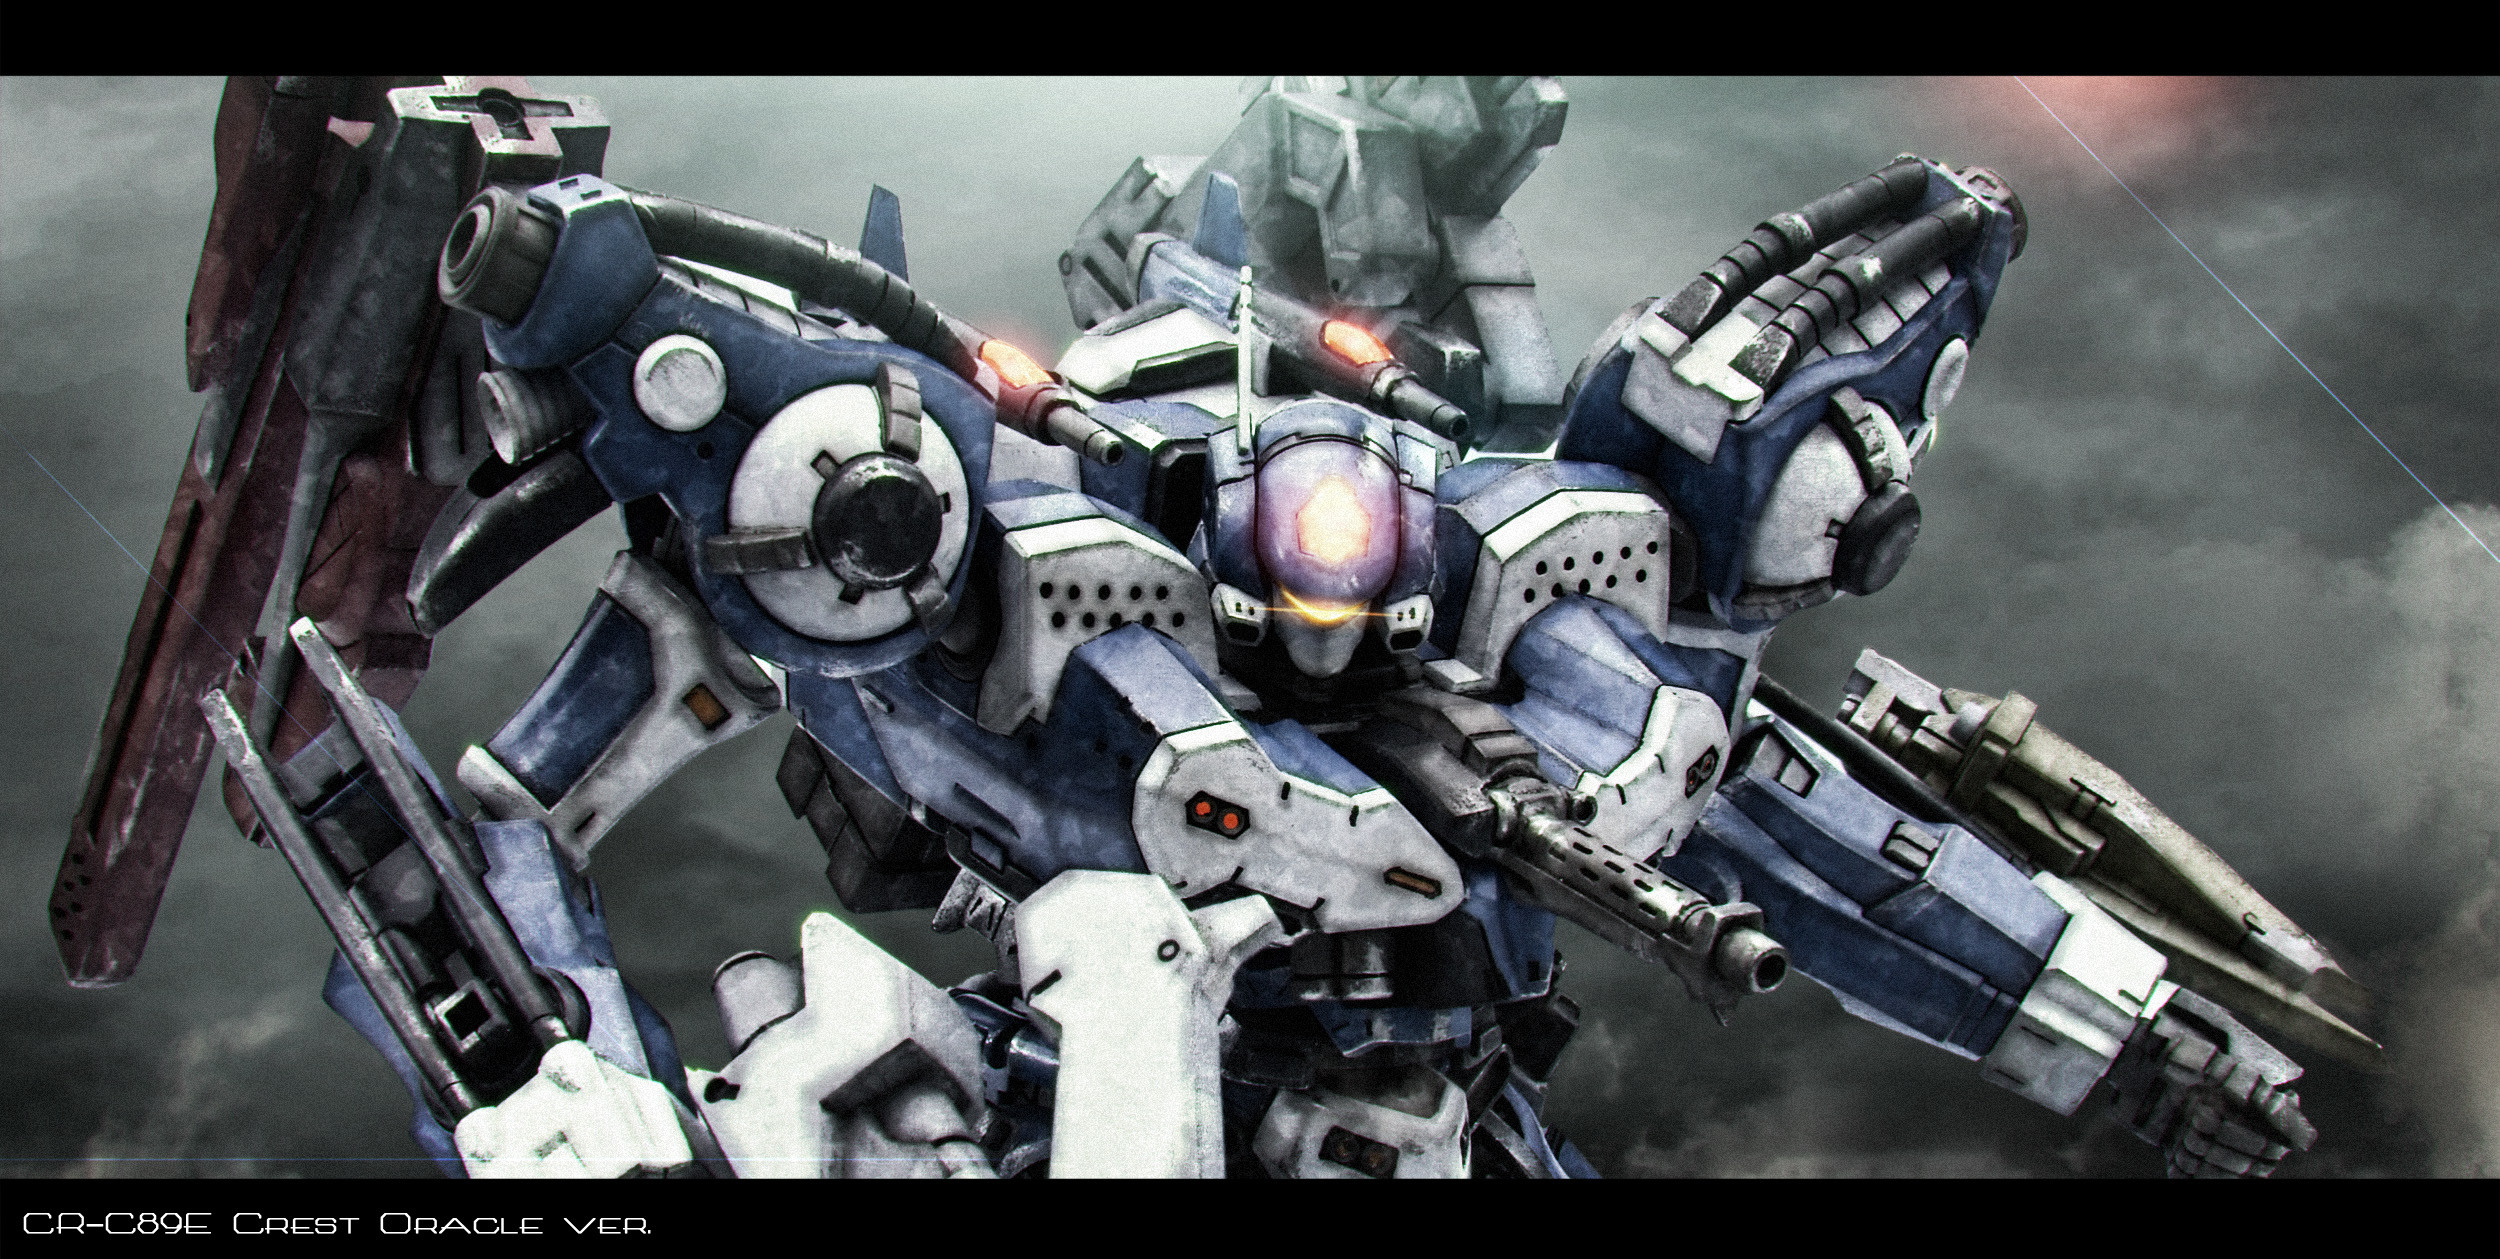 Armored core wallpaper 2500x1259 armored core wallpaper by moiano on deviantart 900563 armored core v wallpaper adorable voltagebd Images